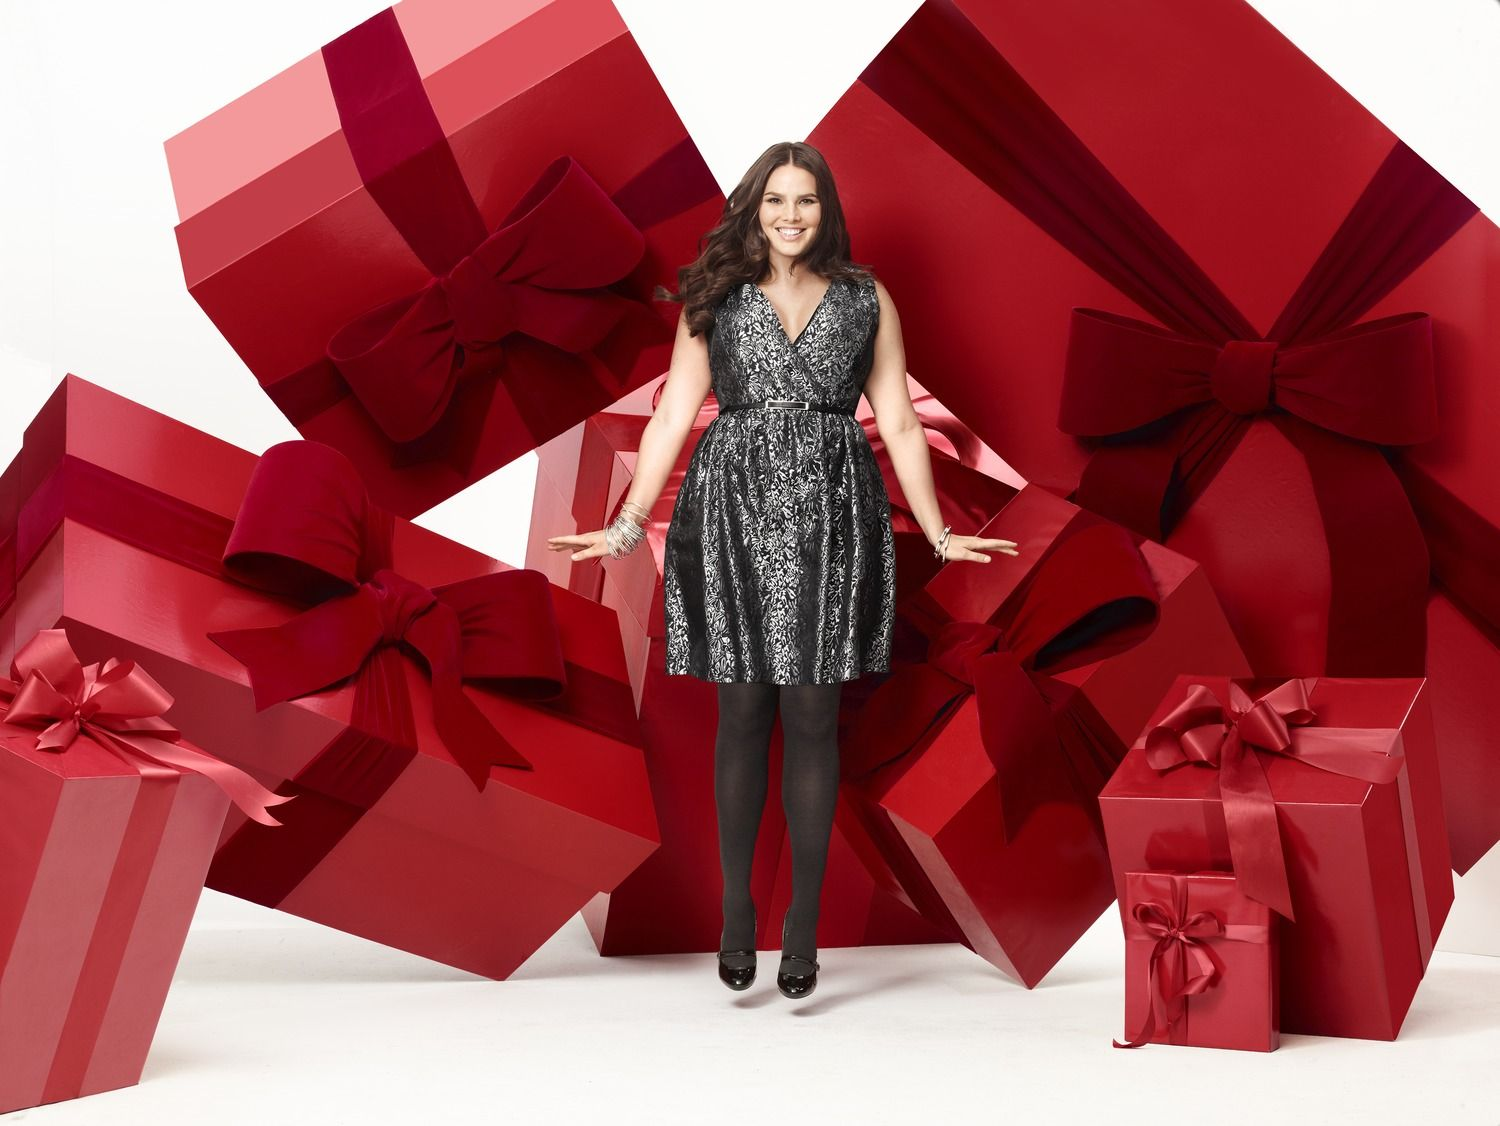 3912670e8713 Brocade Surplice Dress - a stunning choice for your next event! #LaneBryant